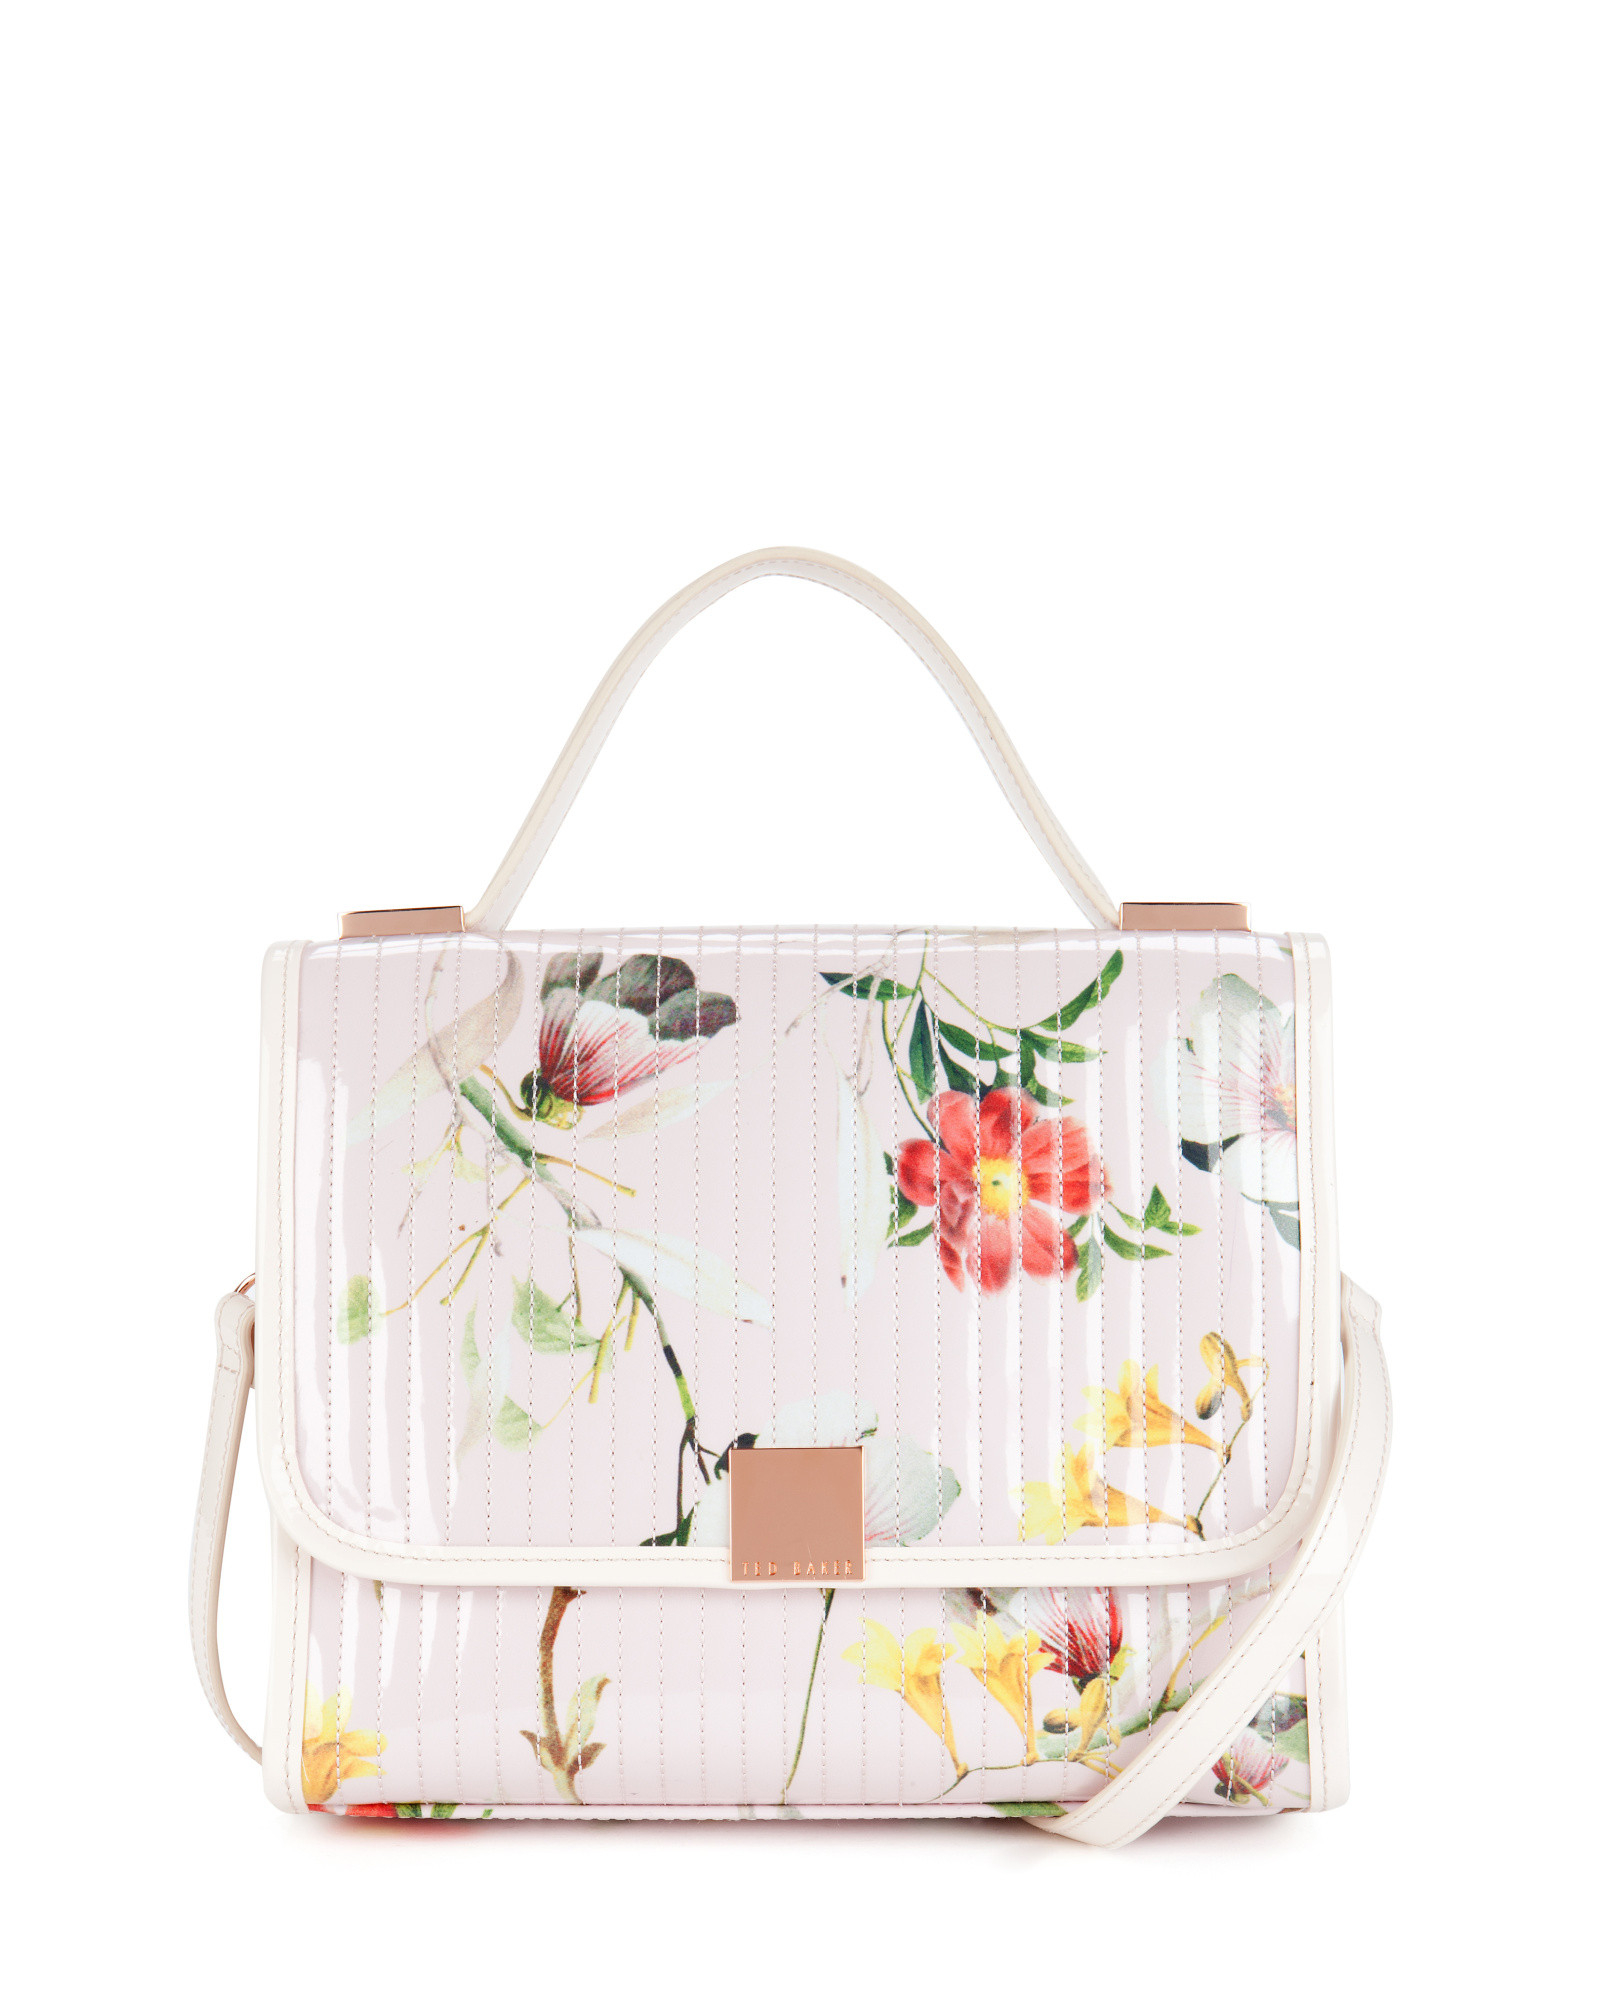 672cc39e6157b8 Ted Baker Botanical Bloom Print Lady Bag in Natural - Lyst